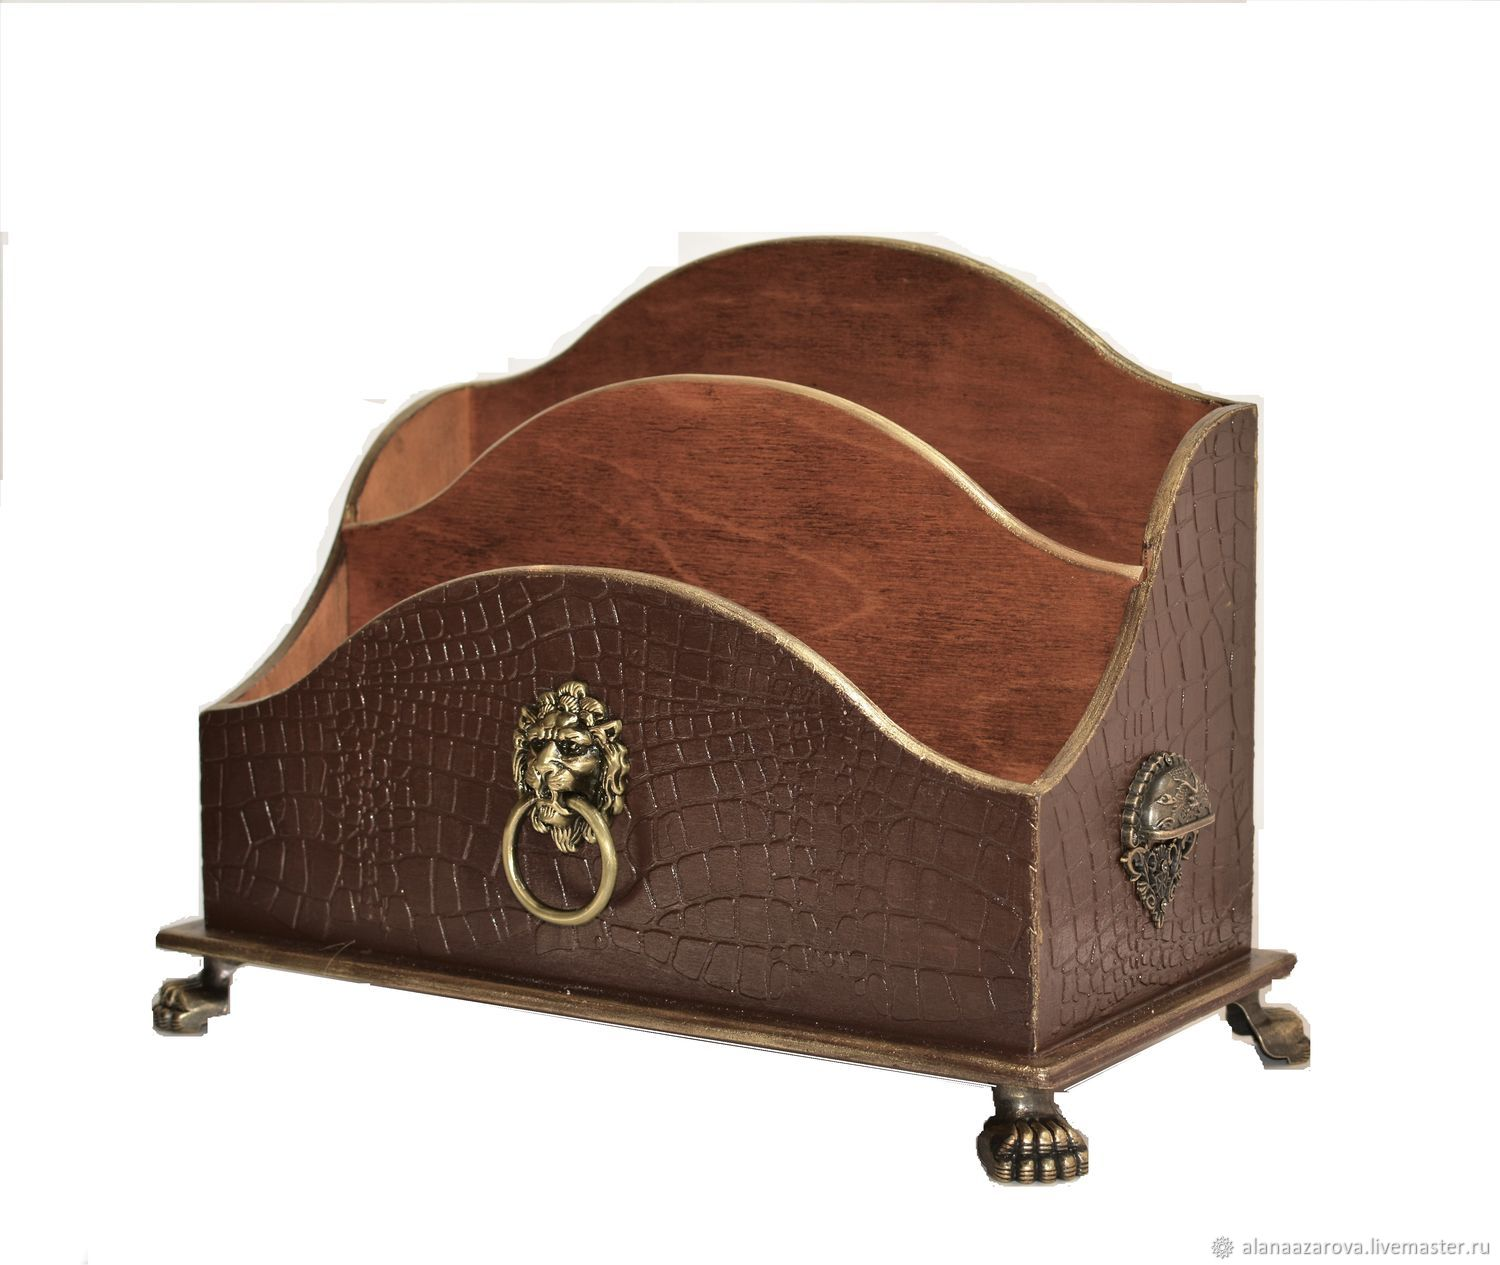 Mini chests of drawers are handmade Bureau `Premier Alan Azarov Fair Masters Office for the securities Bureau of the Cabinet office in the gift